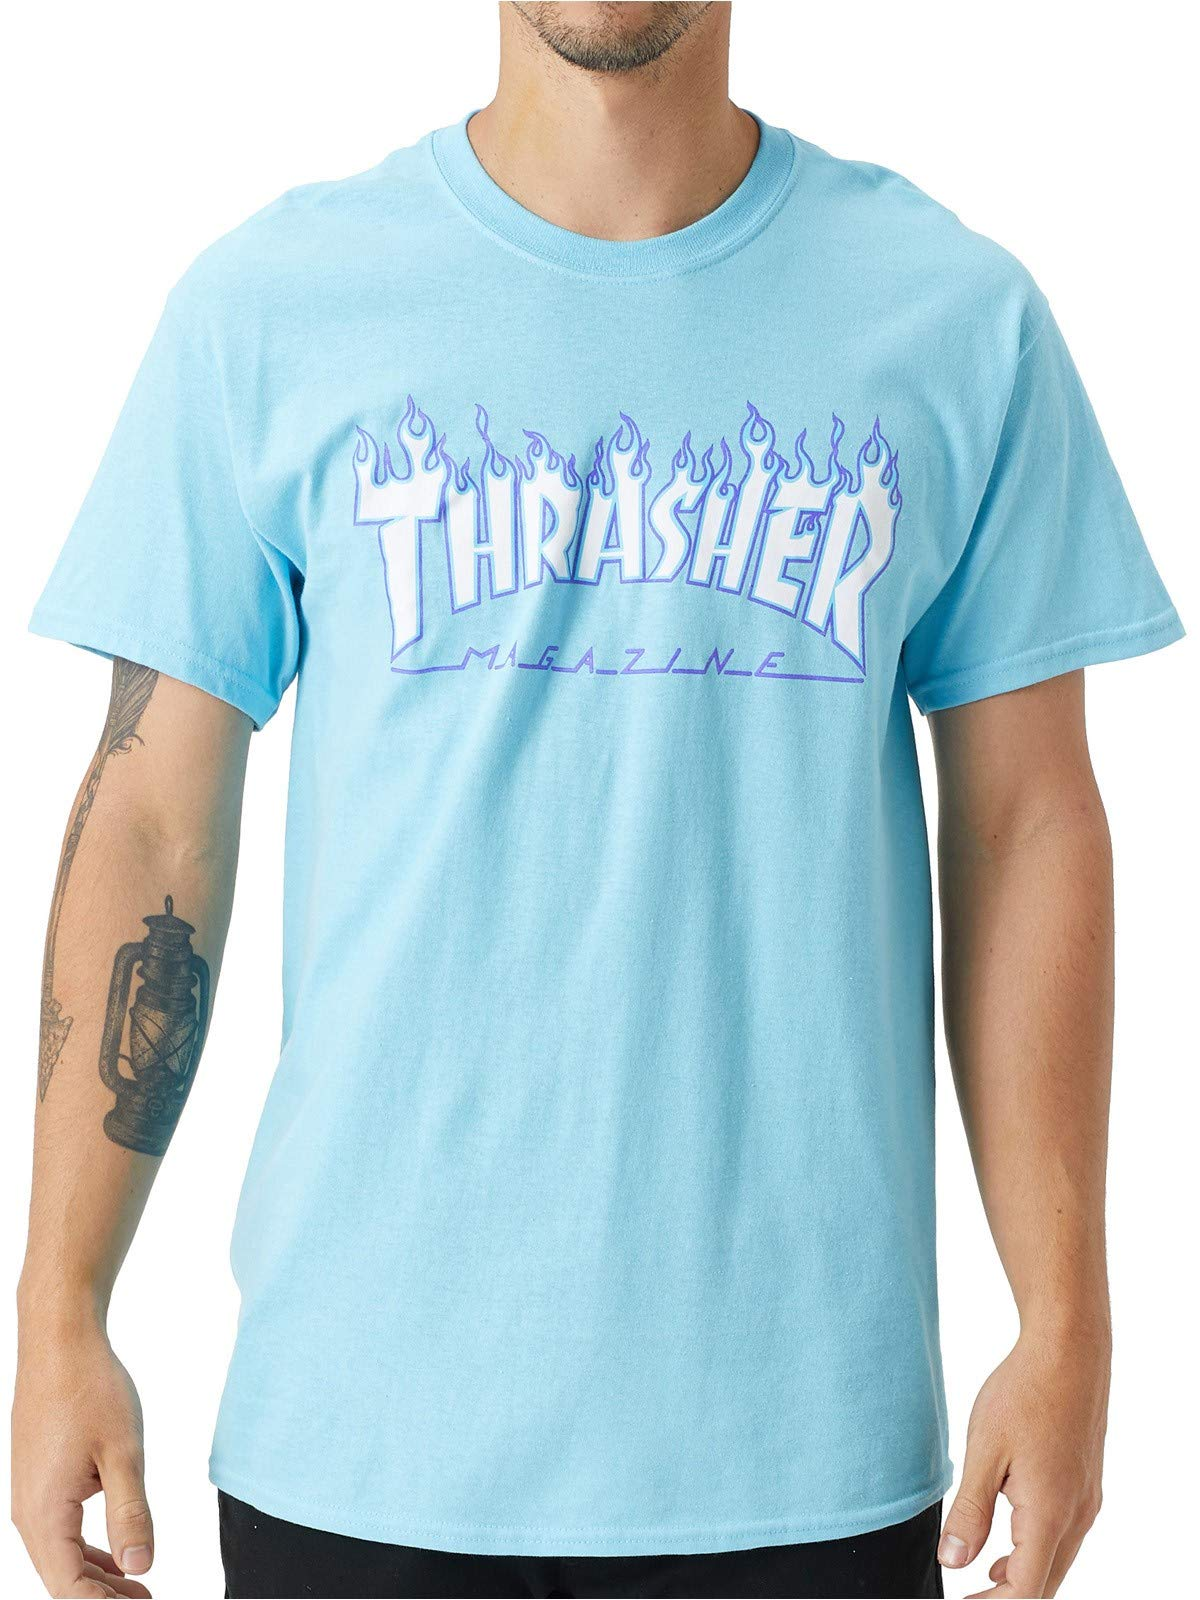 Thrasher Flame S/S Tee Sky Blue M by Thrasher (Image #1)